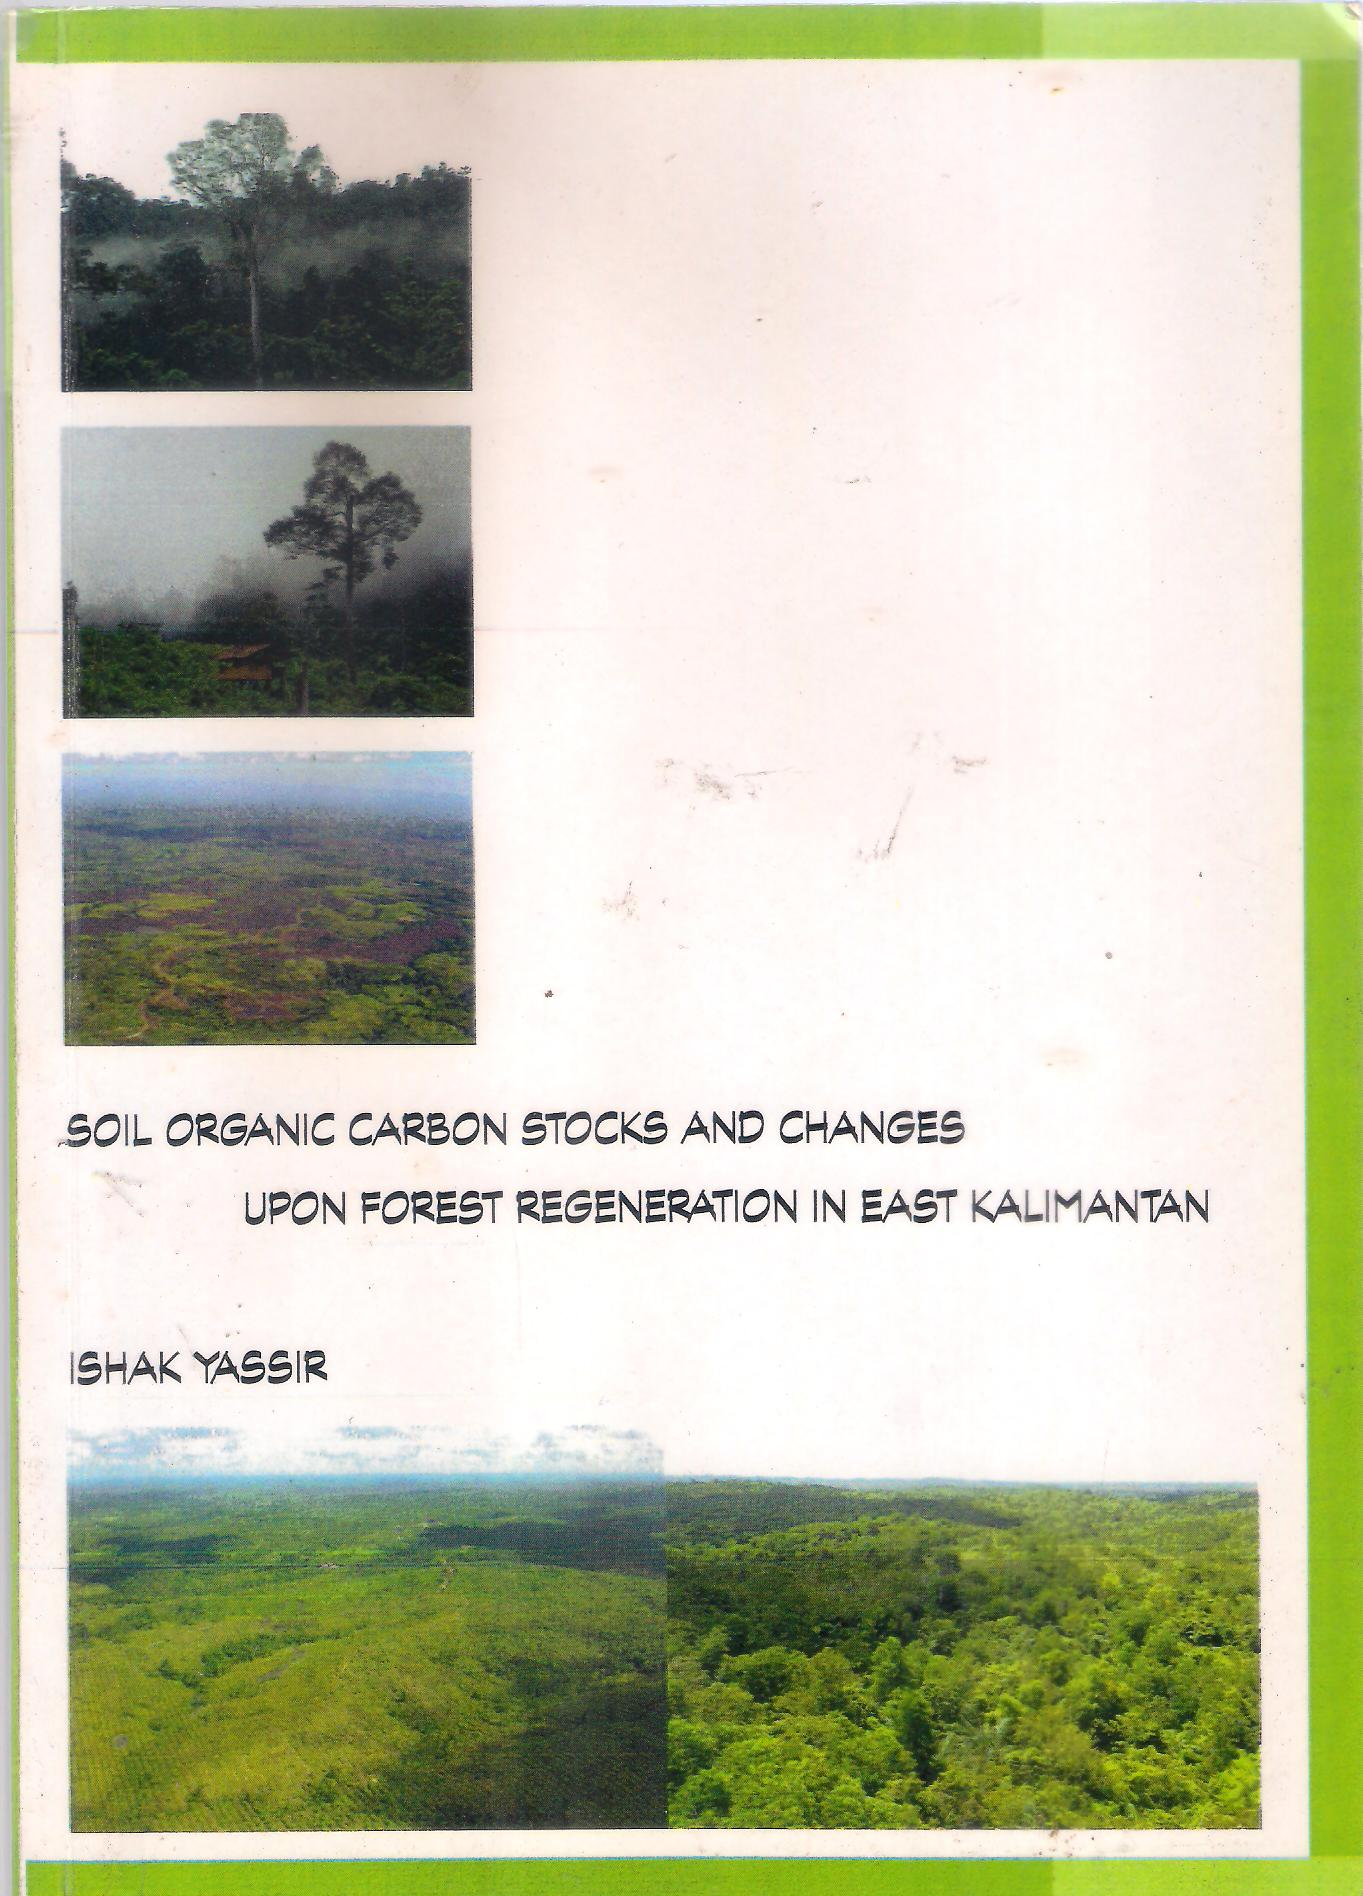 Soil-Organic Carbon Stocks and Changes Upon Forest Regeneration in East Kalimantan